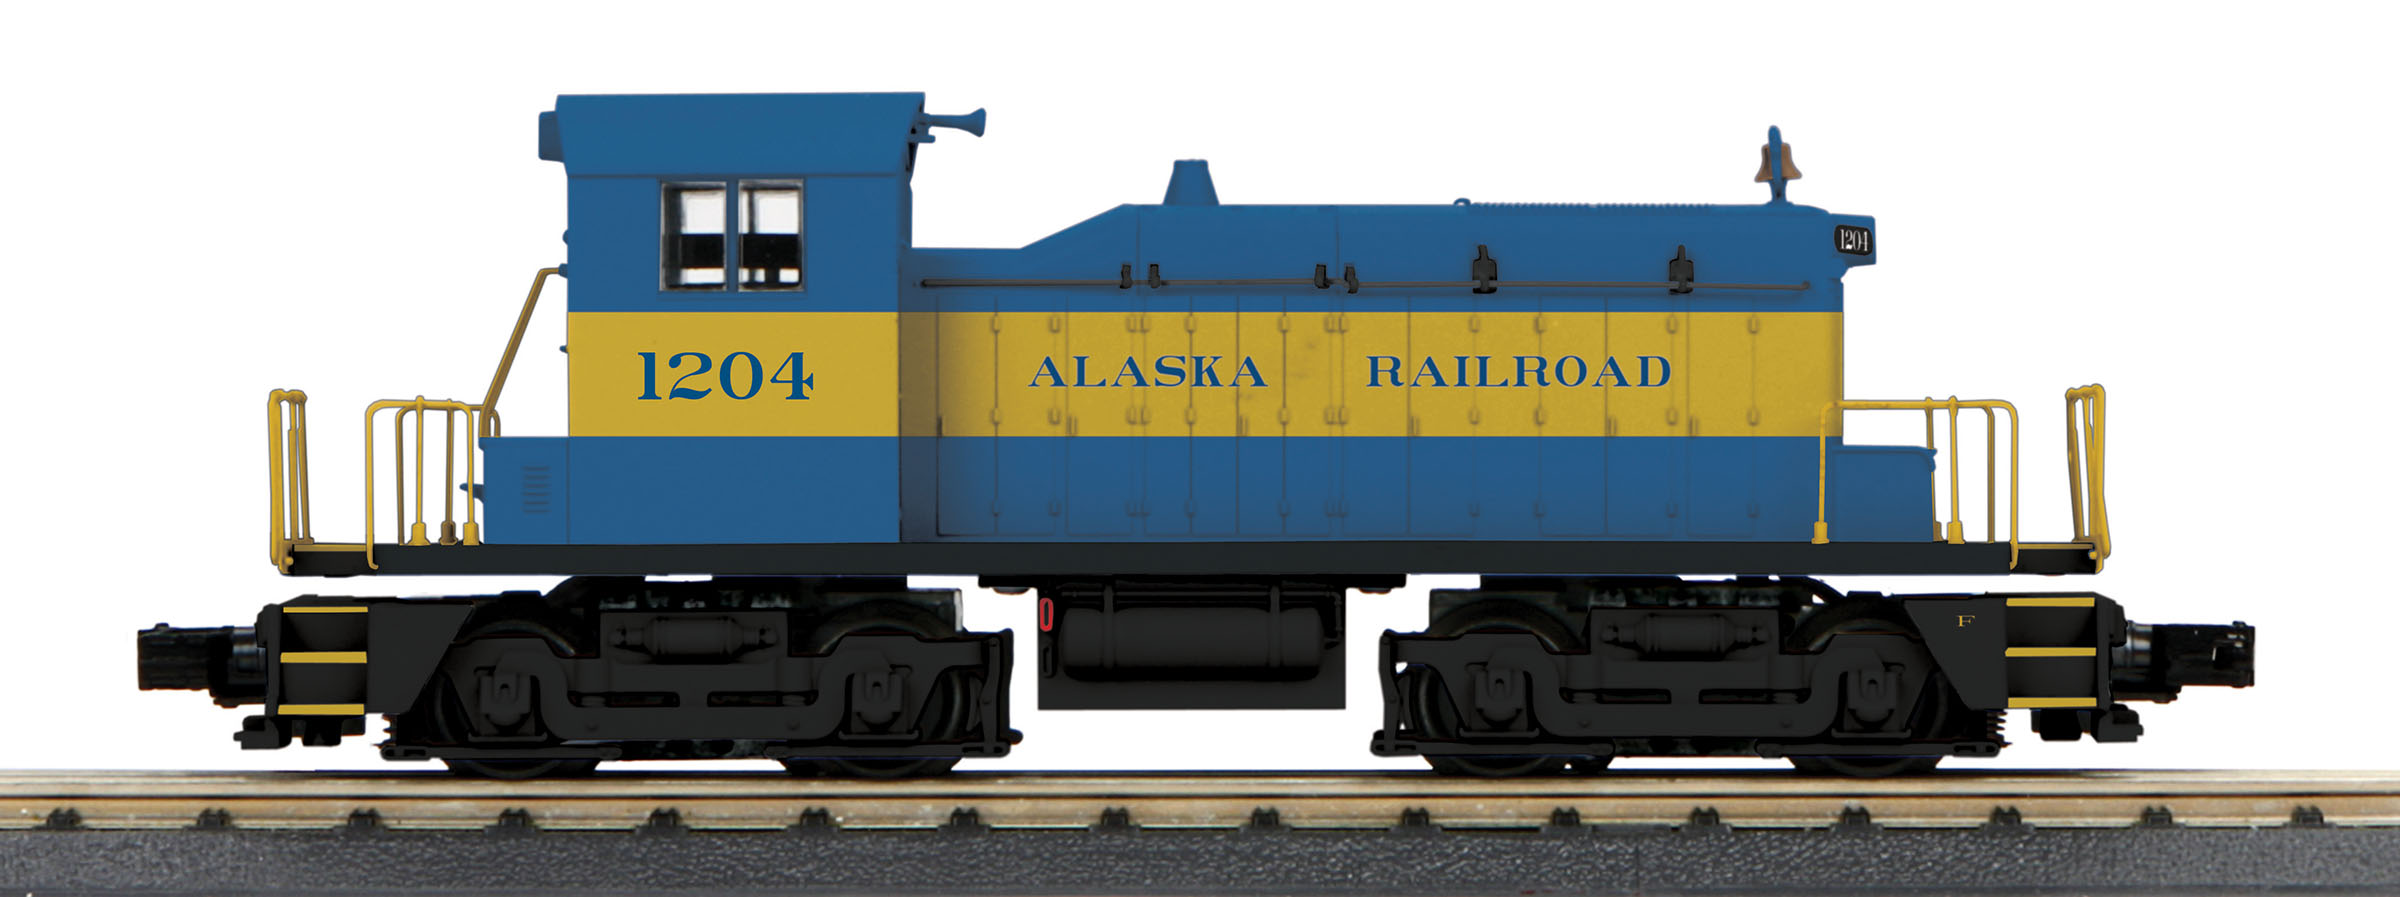 MTH30206001 MTH Electric Trains O-27 SW-1 Switcher w/PS3, ARR #1204